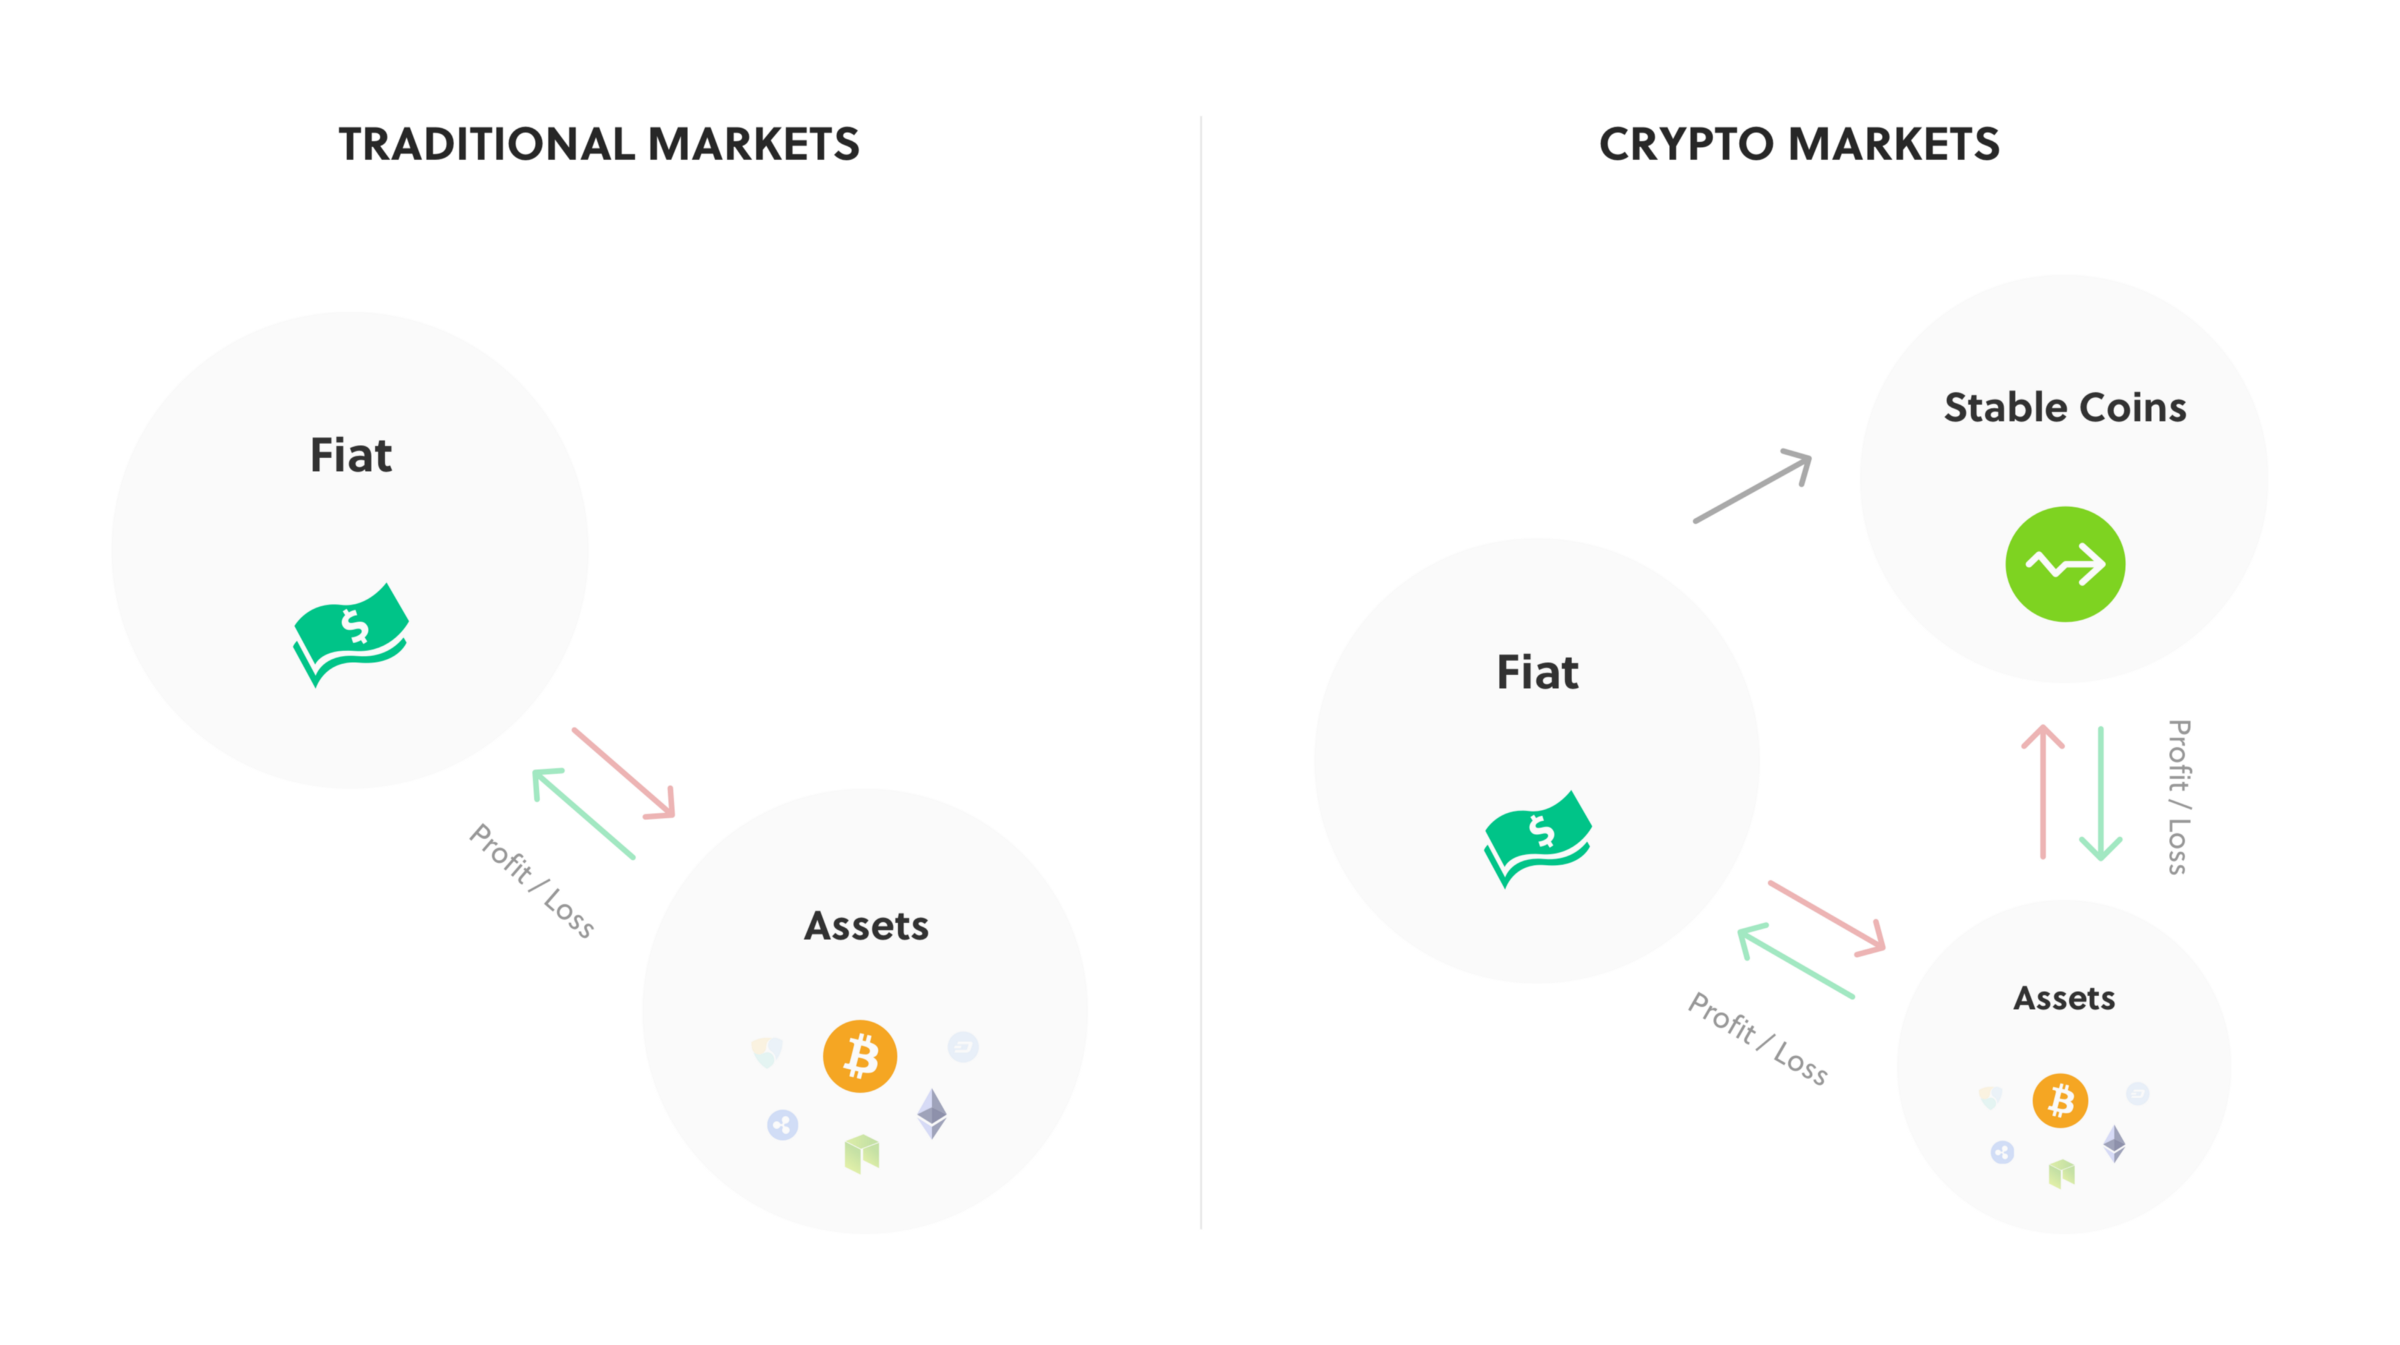 /the-key-metric-for-measuring-crypto-trading-performance-41b0ad4f9f8c feature image